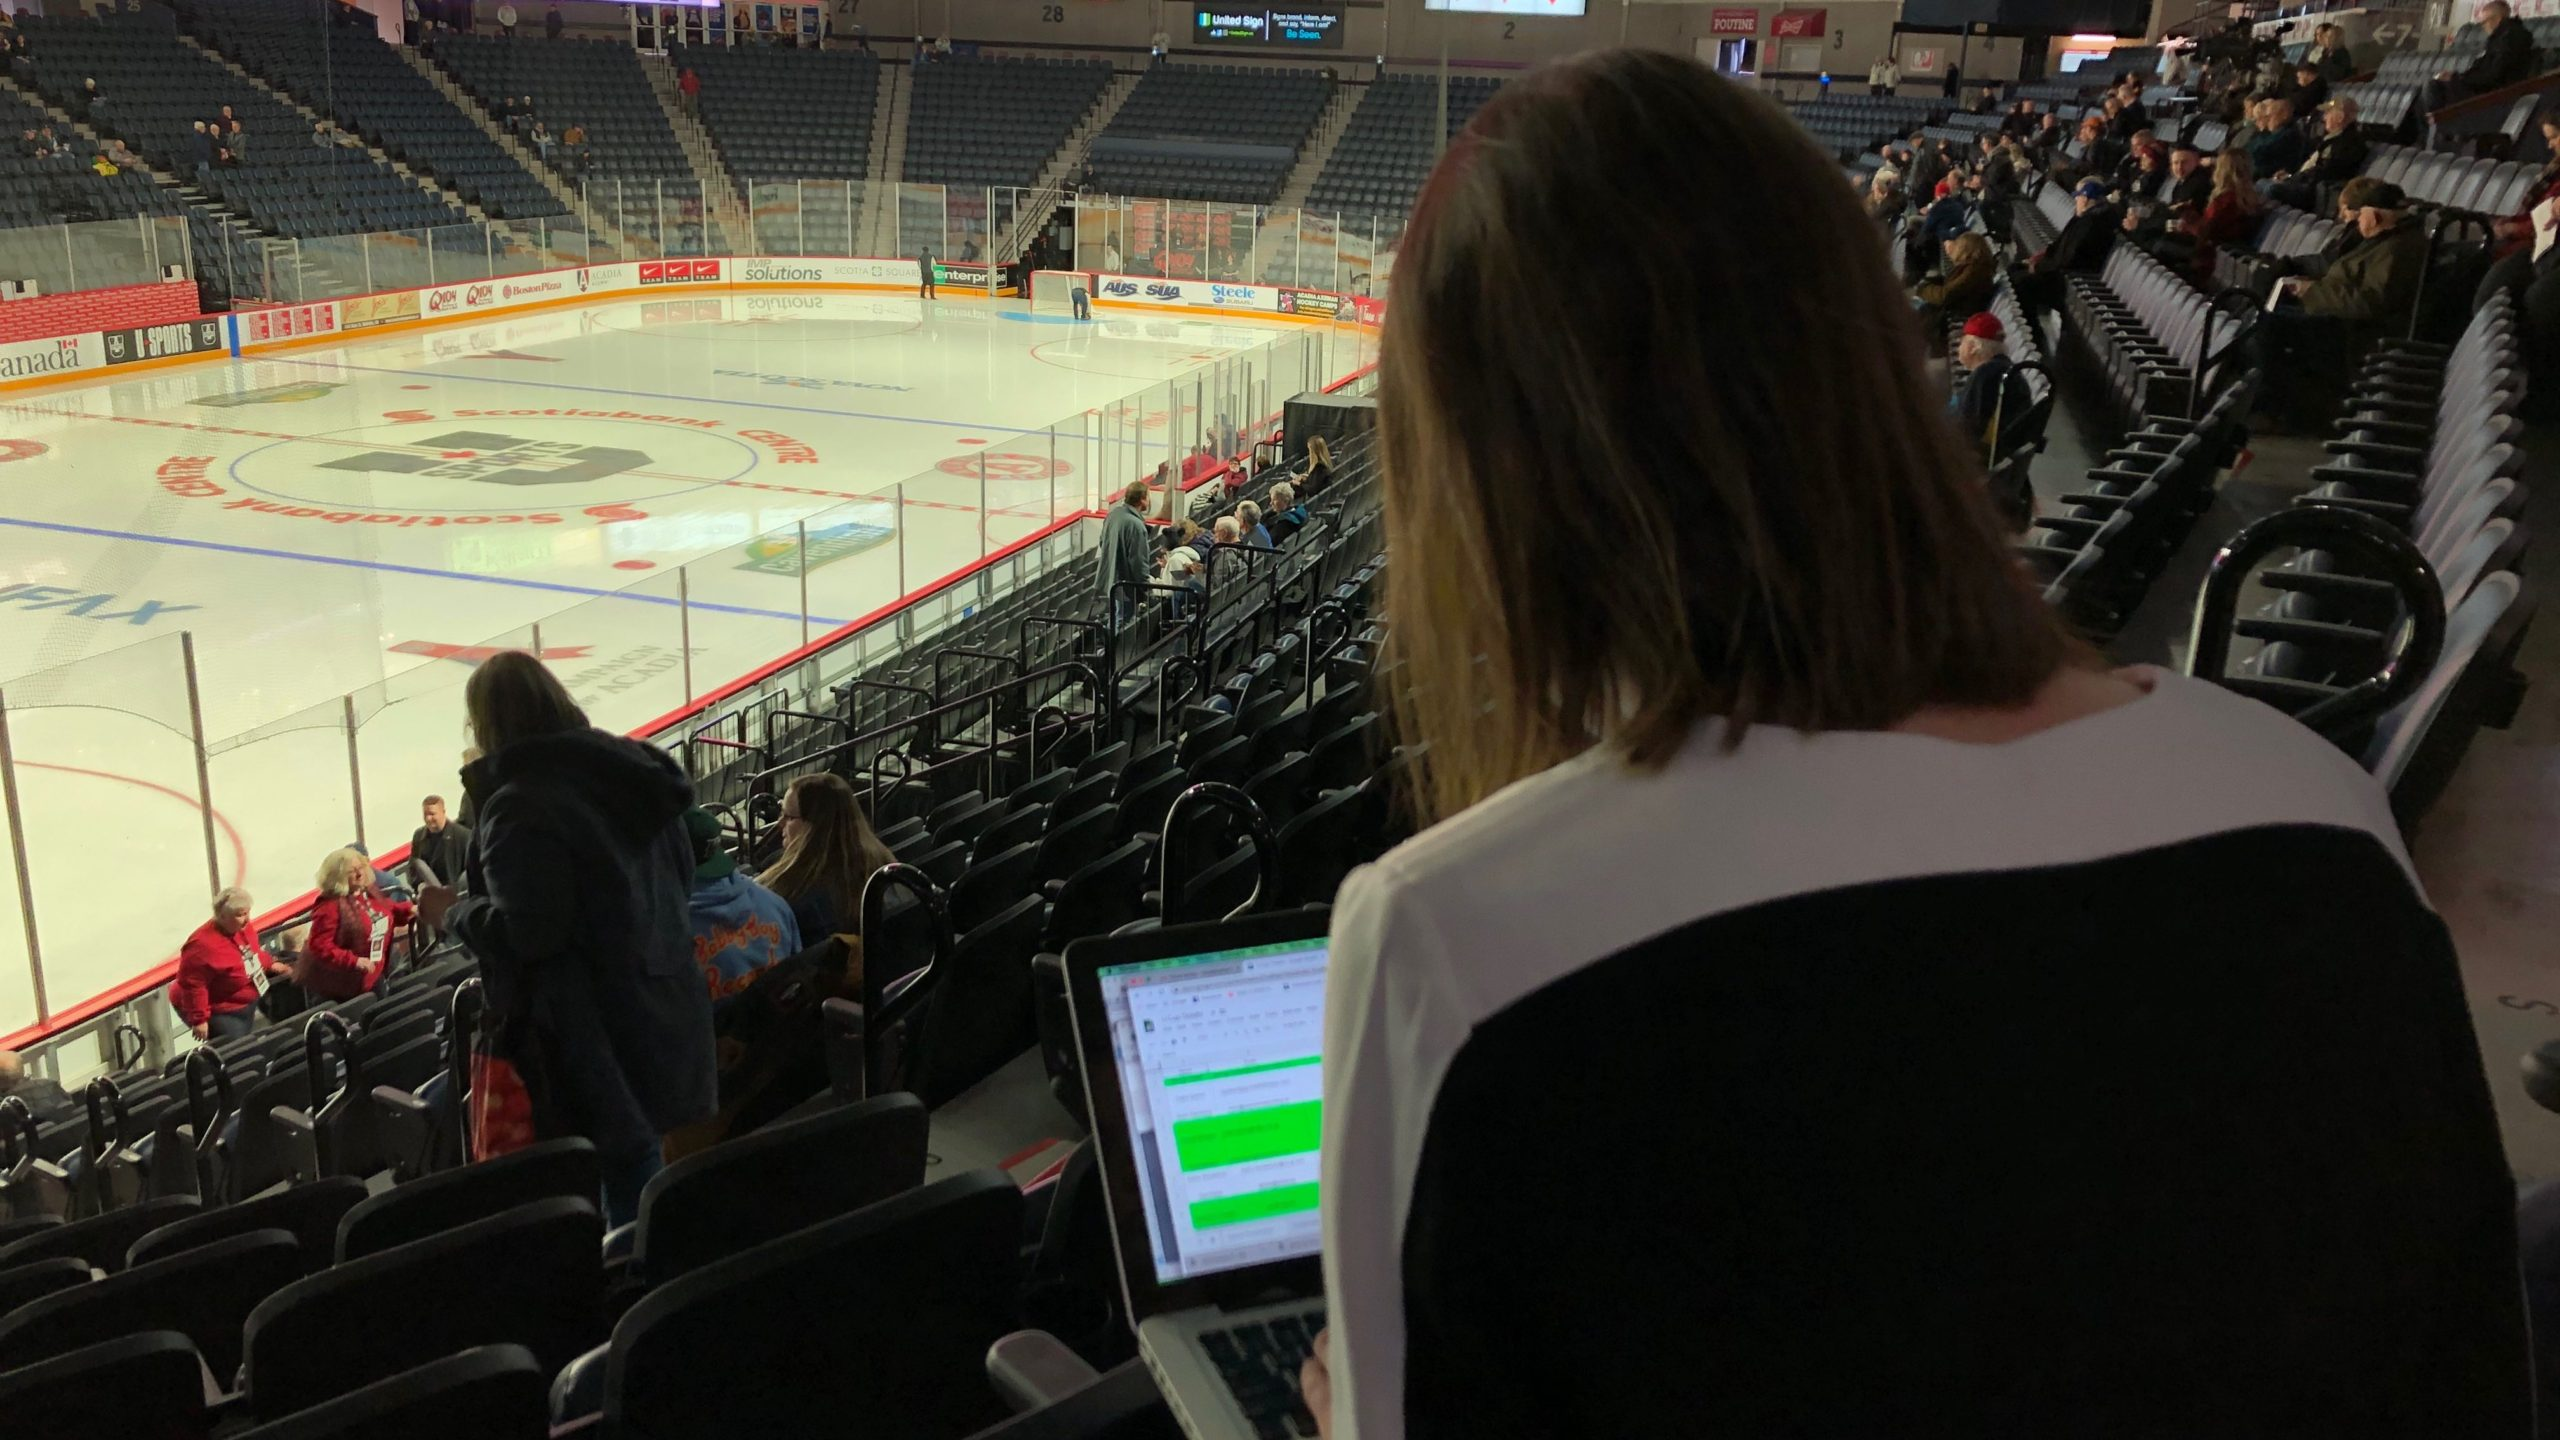 Before the puck drops, Rhéa Koivu catches up on emails.